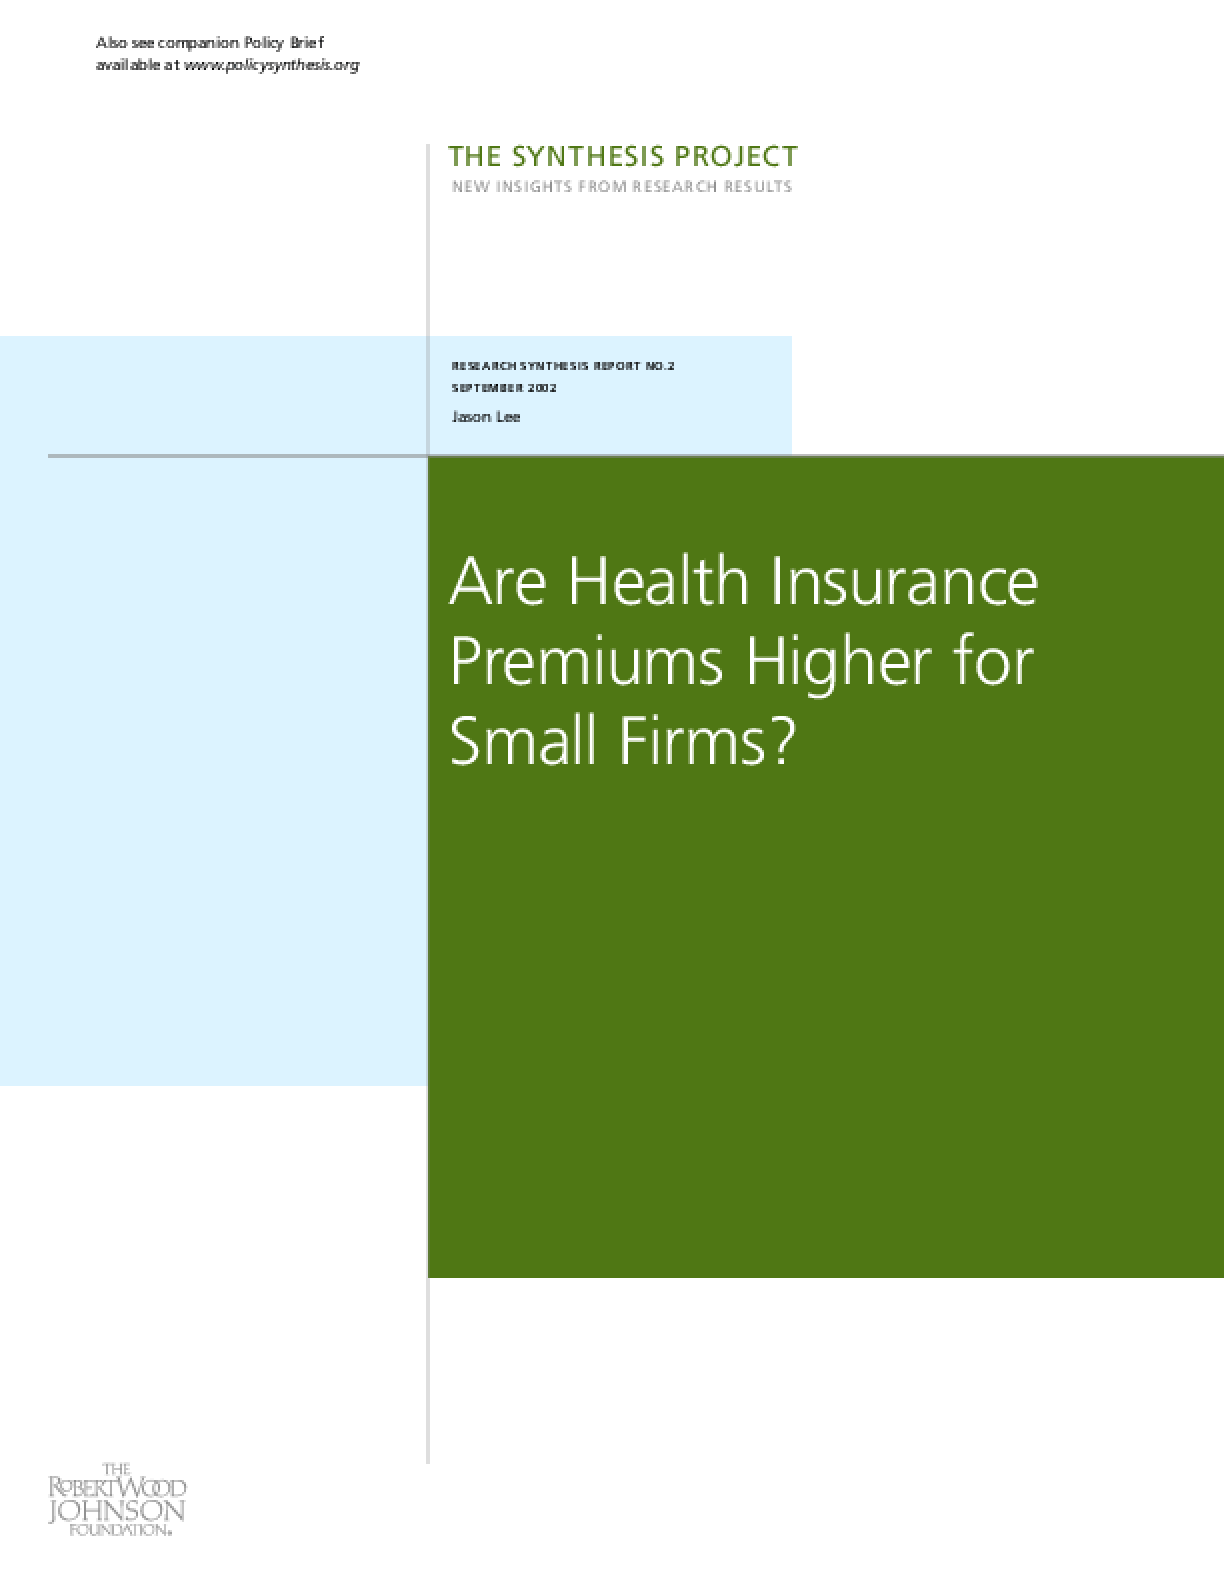 Are Health Insurance Premiums Higher for Small Firms?